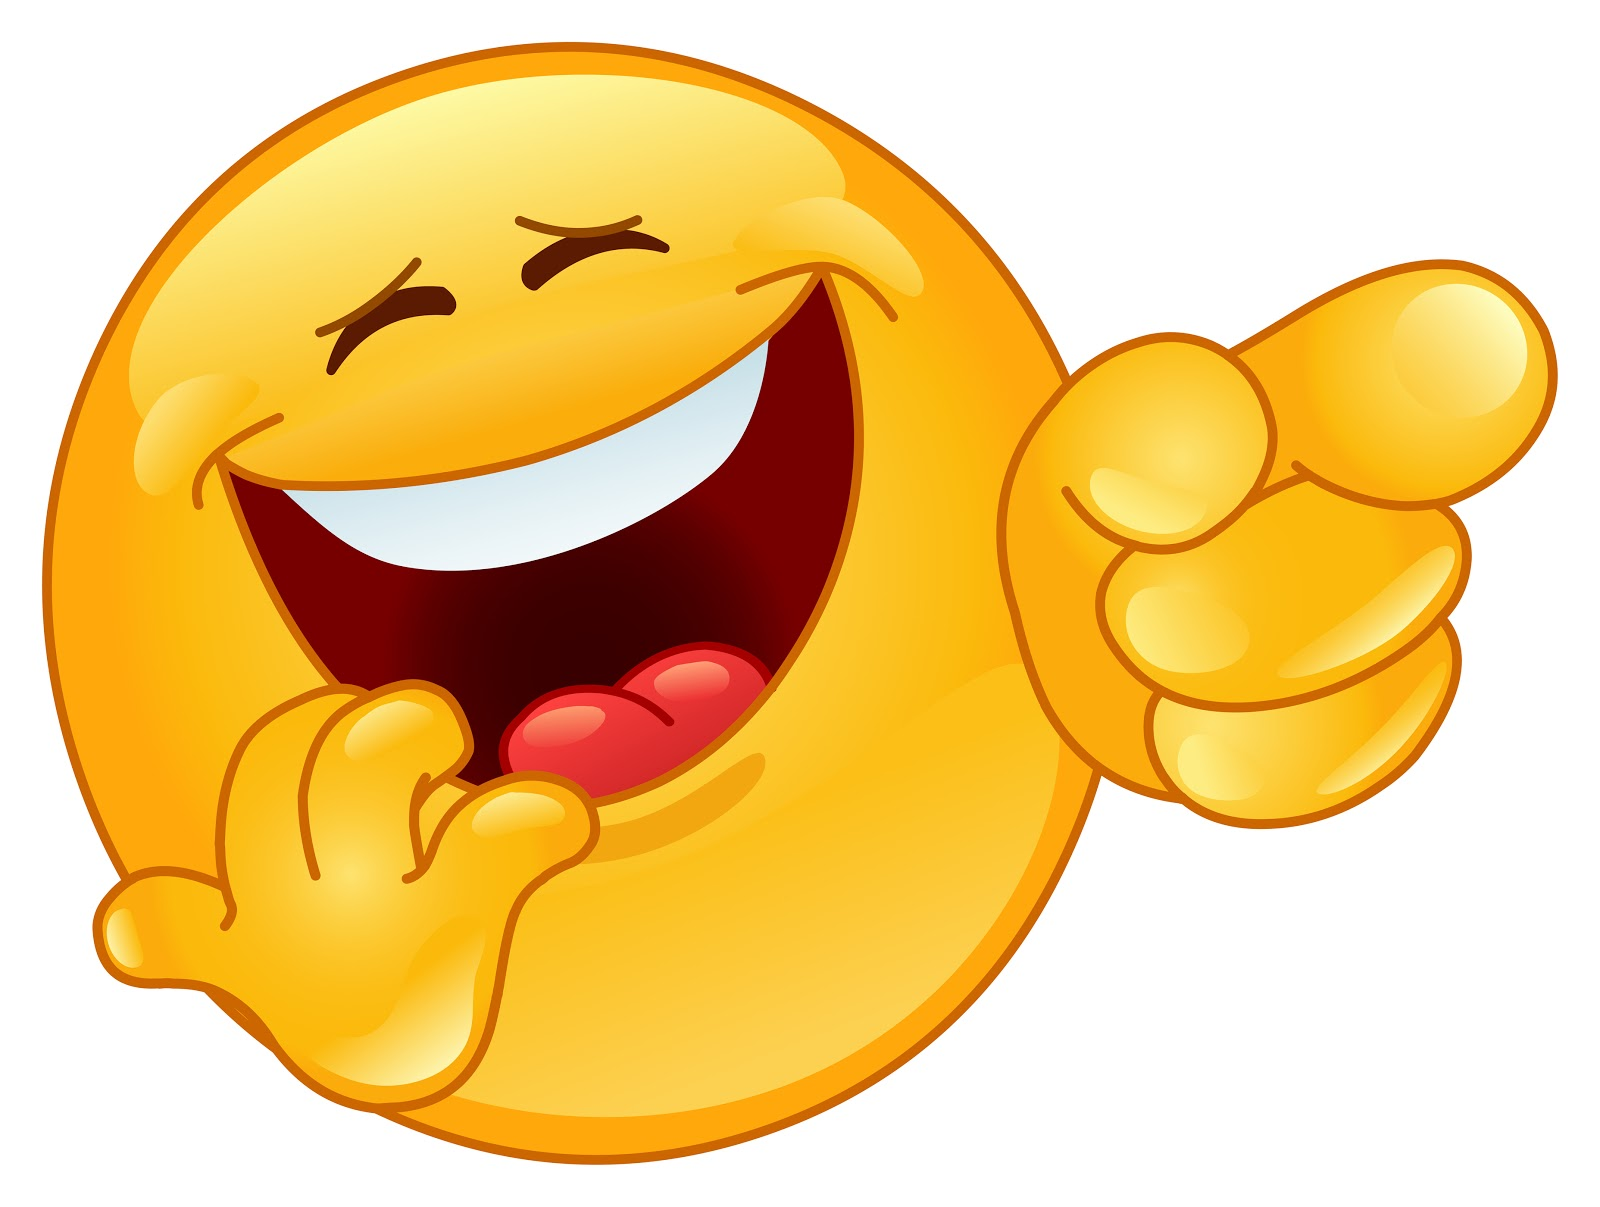 Free Laugh Cliparts, Download Free Clip Art, Free Clip Art.